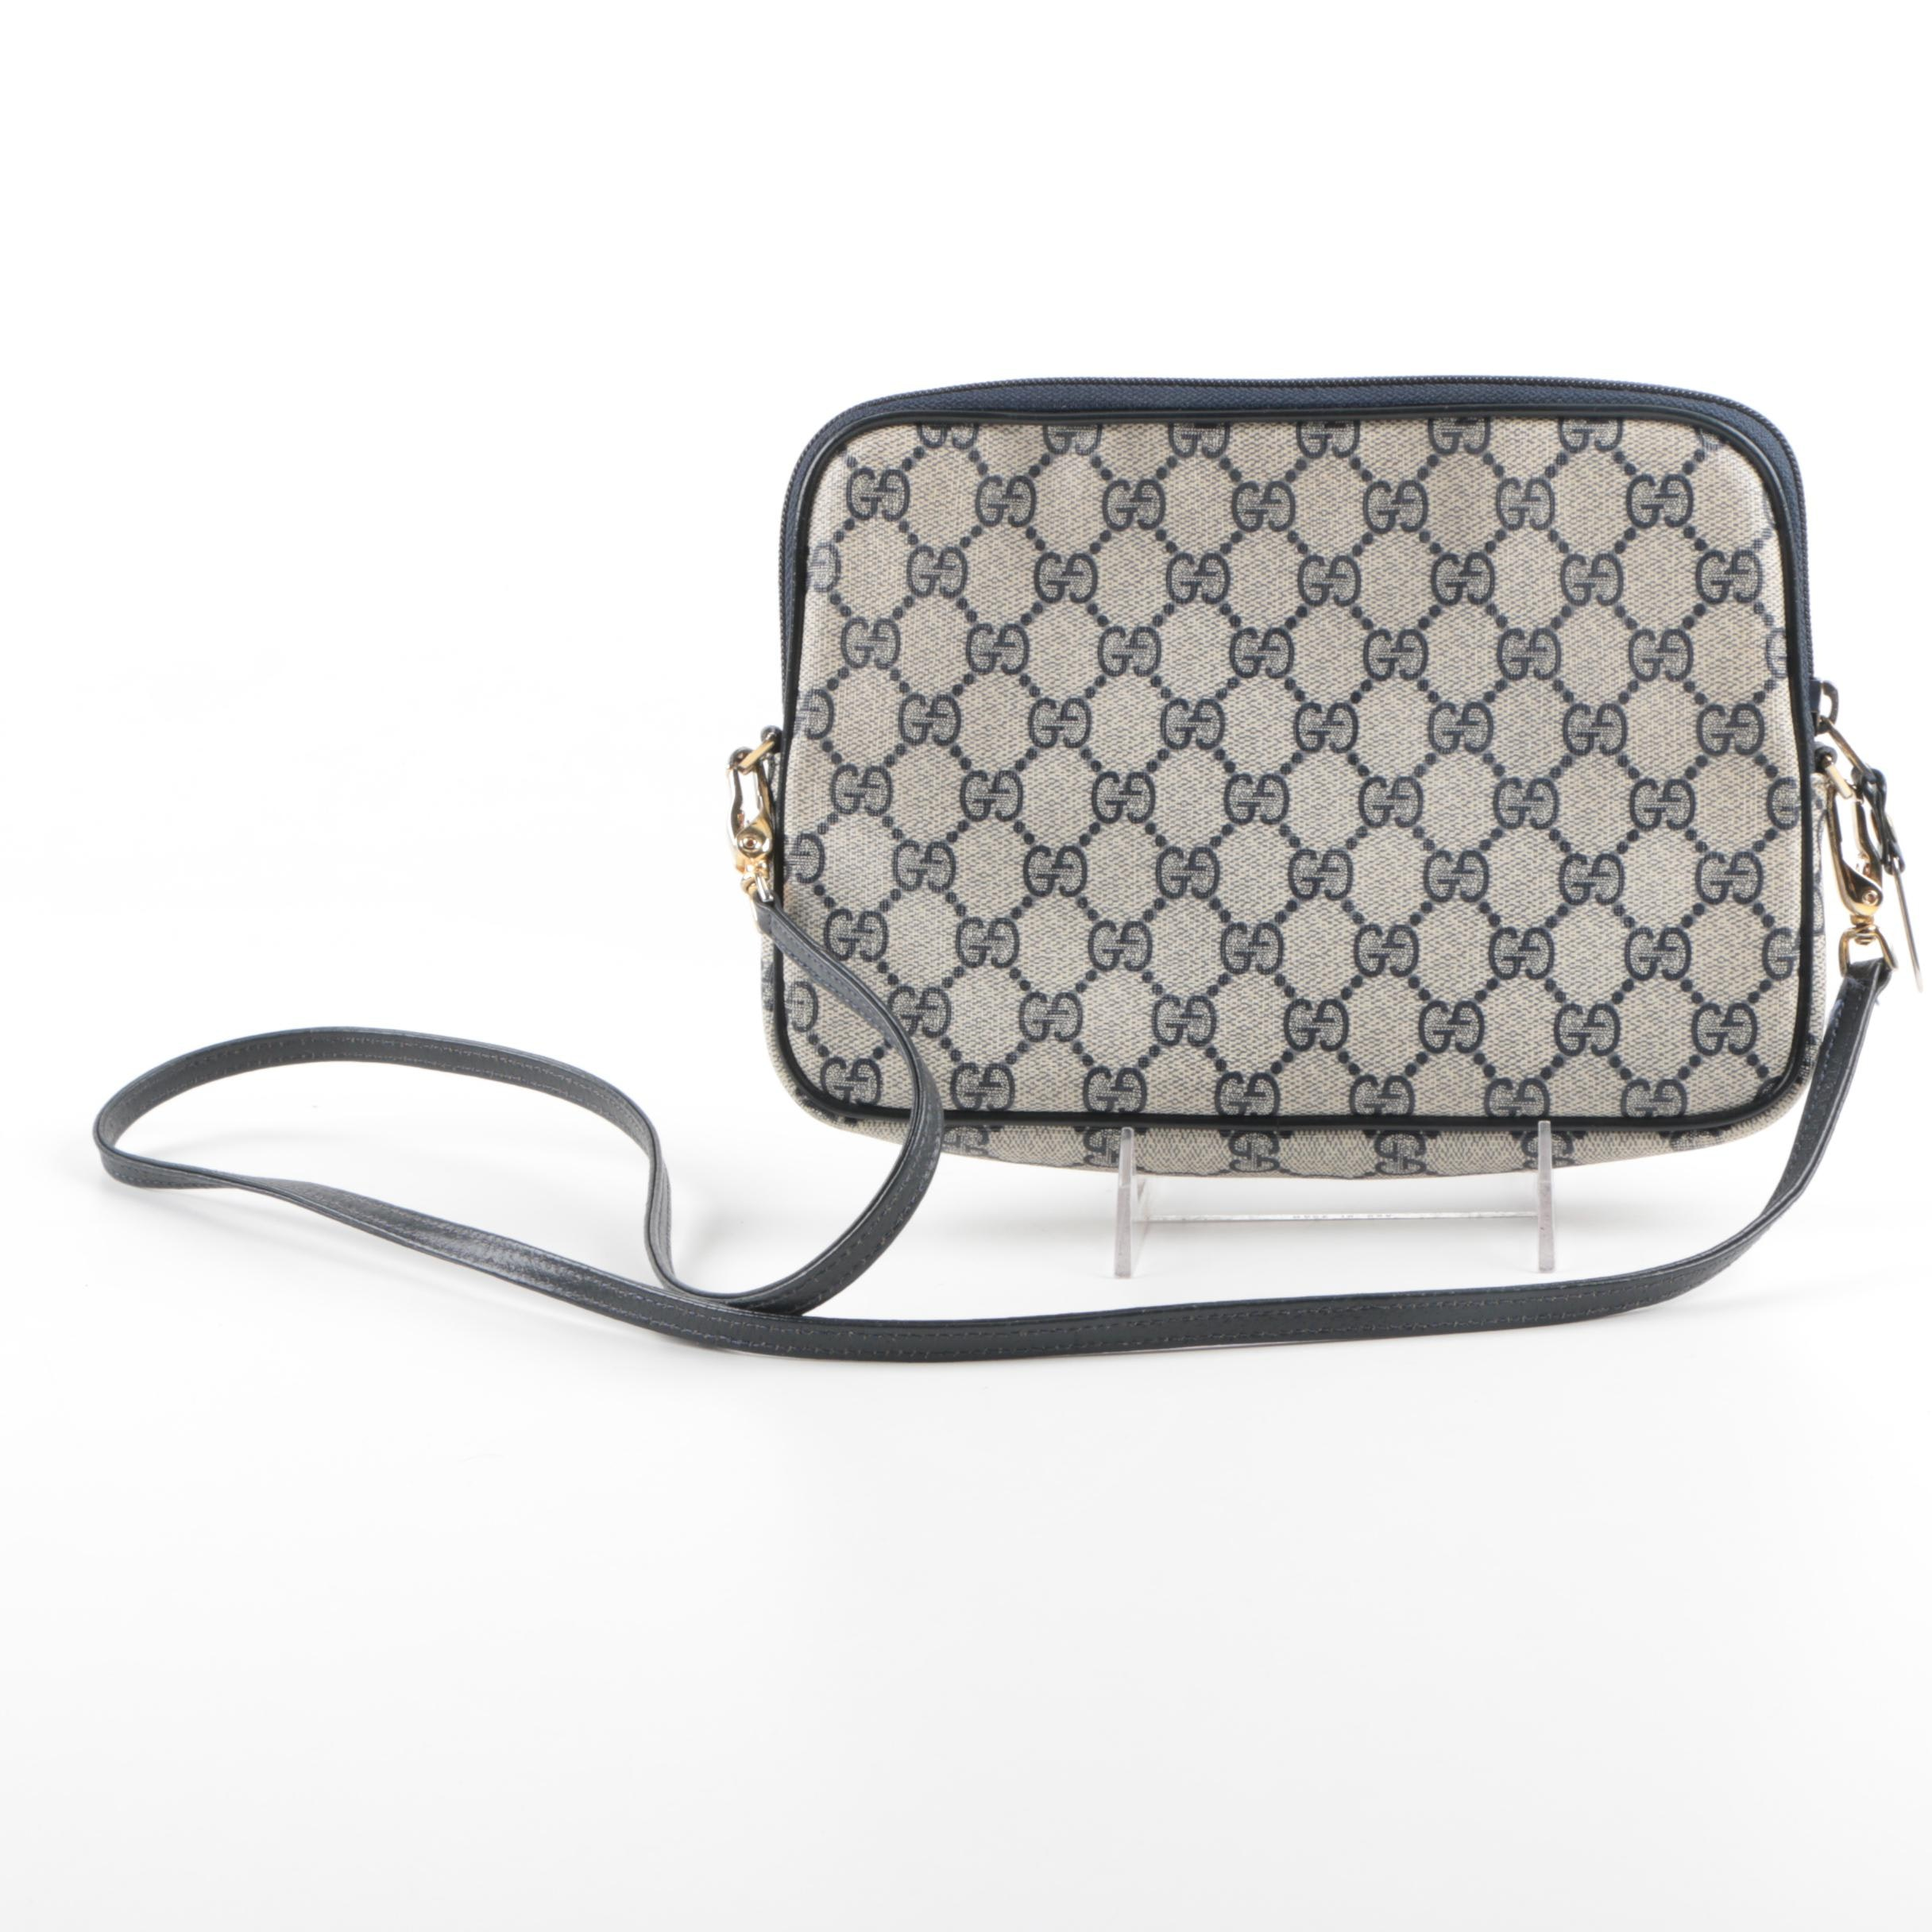 Gucci Coated Canvas Cross-Body Bag